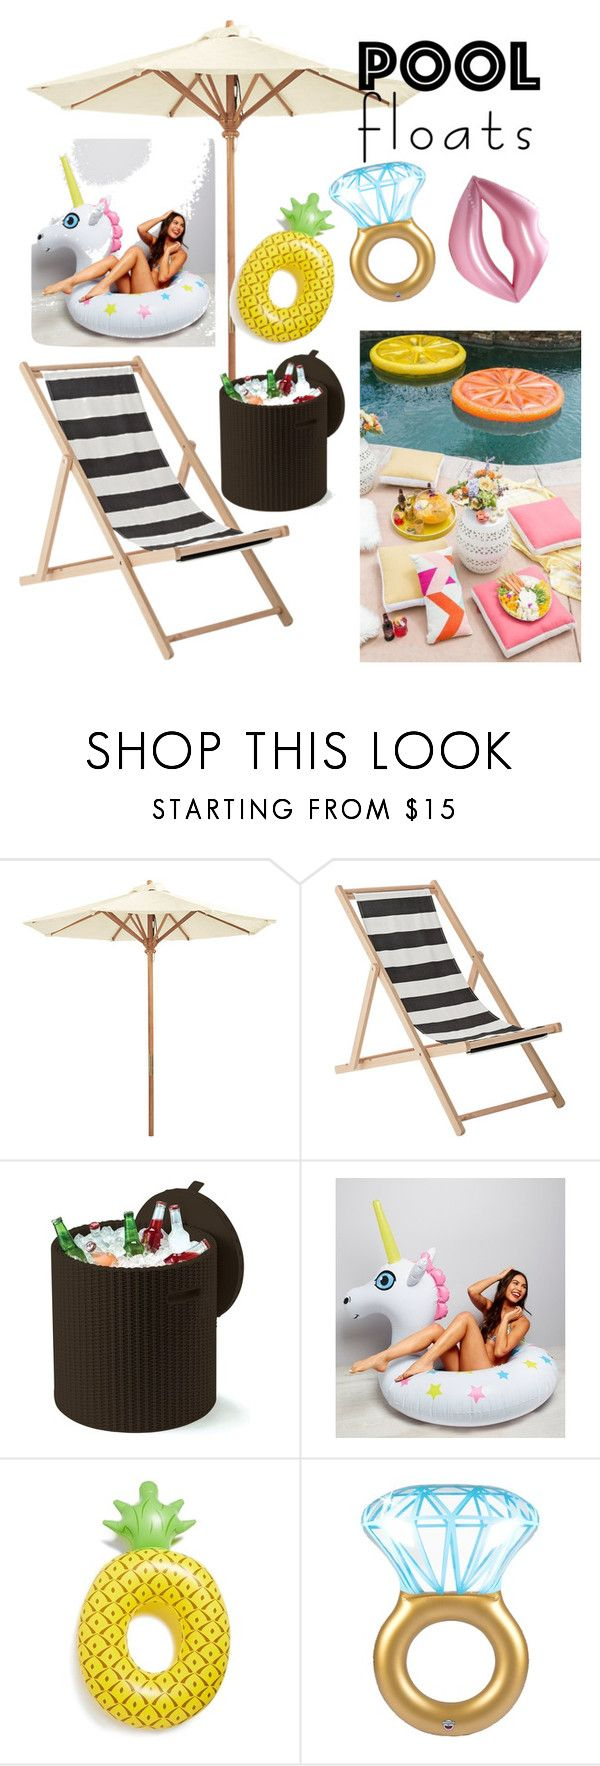 """Untitled #125"" by putrinaini on Polyvore featuring interior, interiors, interior design, home, home decor, interior decorating, Ballard Designs, Bloomingville, Keter and New Look"